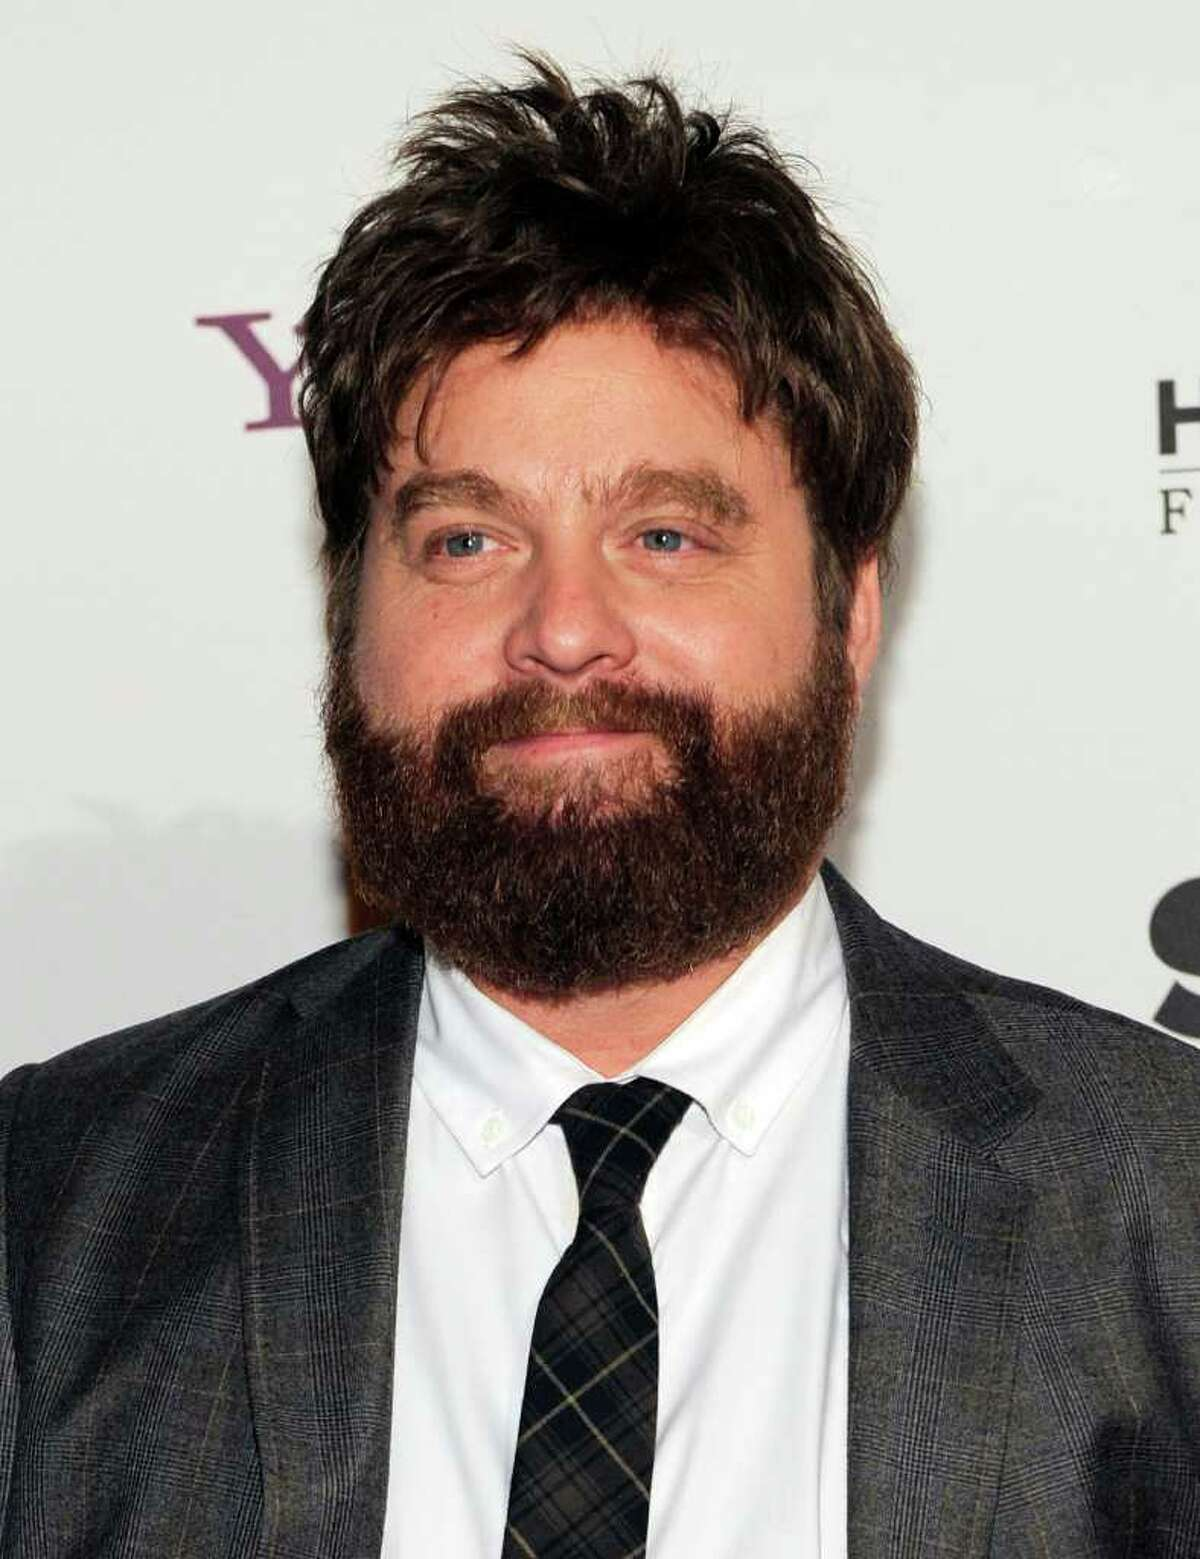 FILE - In this Oct. 25, 2010 file photo, actor Zach Galifianakis arrives at the 14th Annual Hollywood Awards Gala in Beverly Hills, Calif. Galifiankis has led the 15th annual Webby Awards with four awards for his